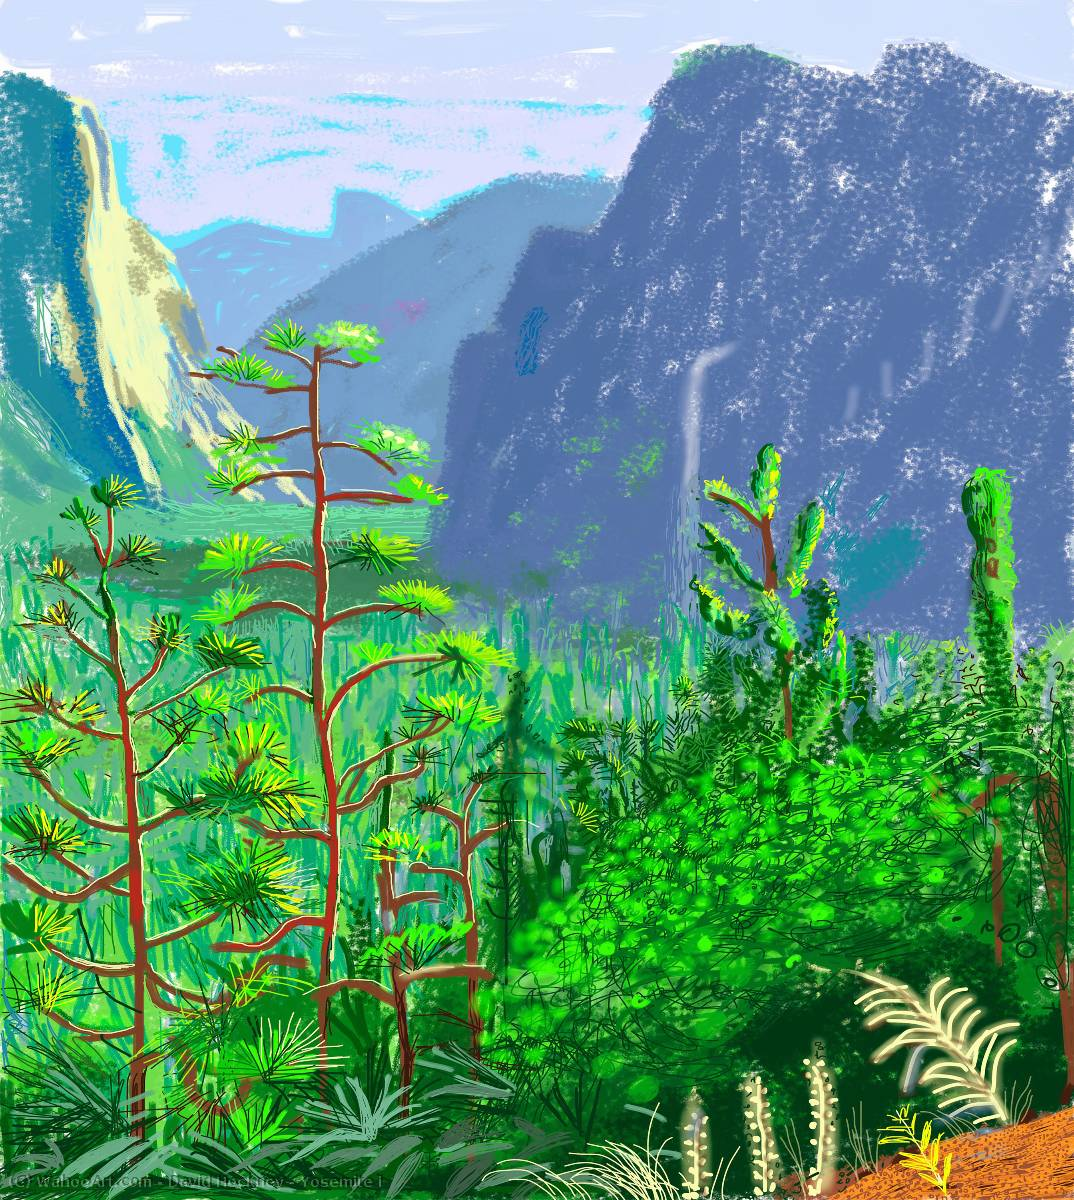 famous painting Yosemite je of David Hockney